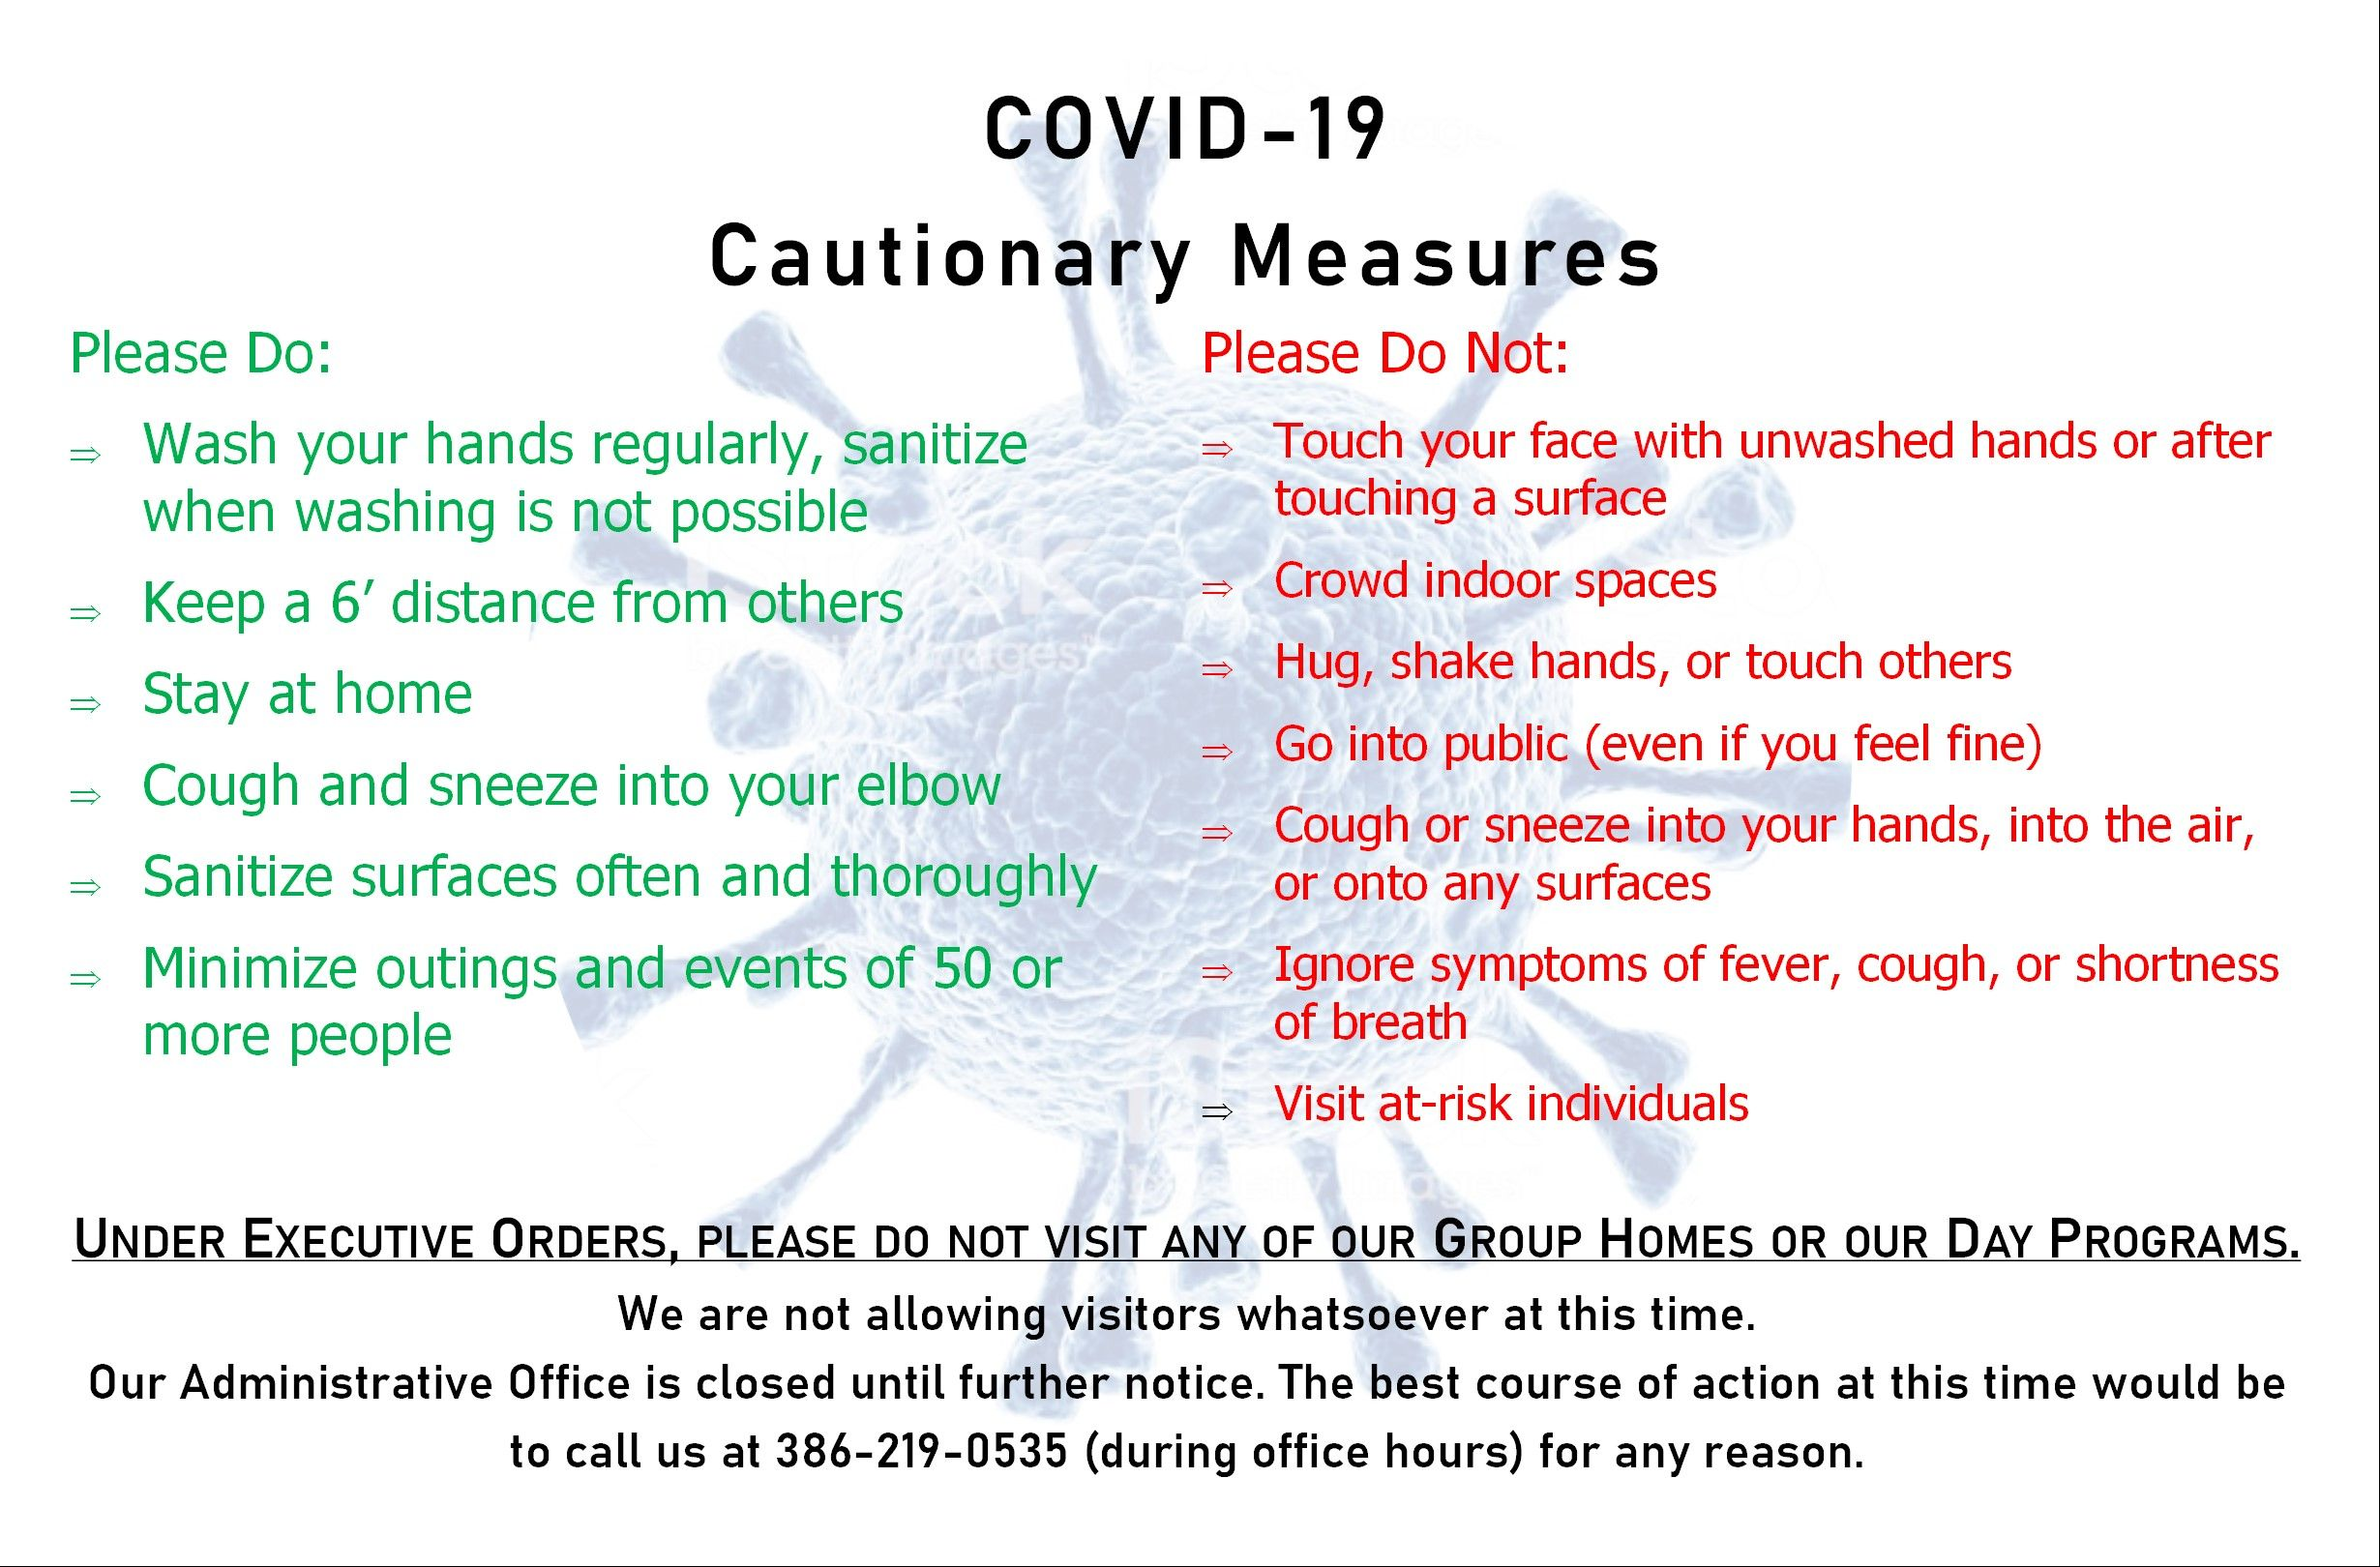 Please follow our current orders regarding COVID-19.